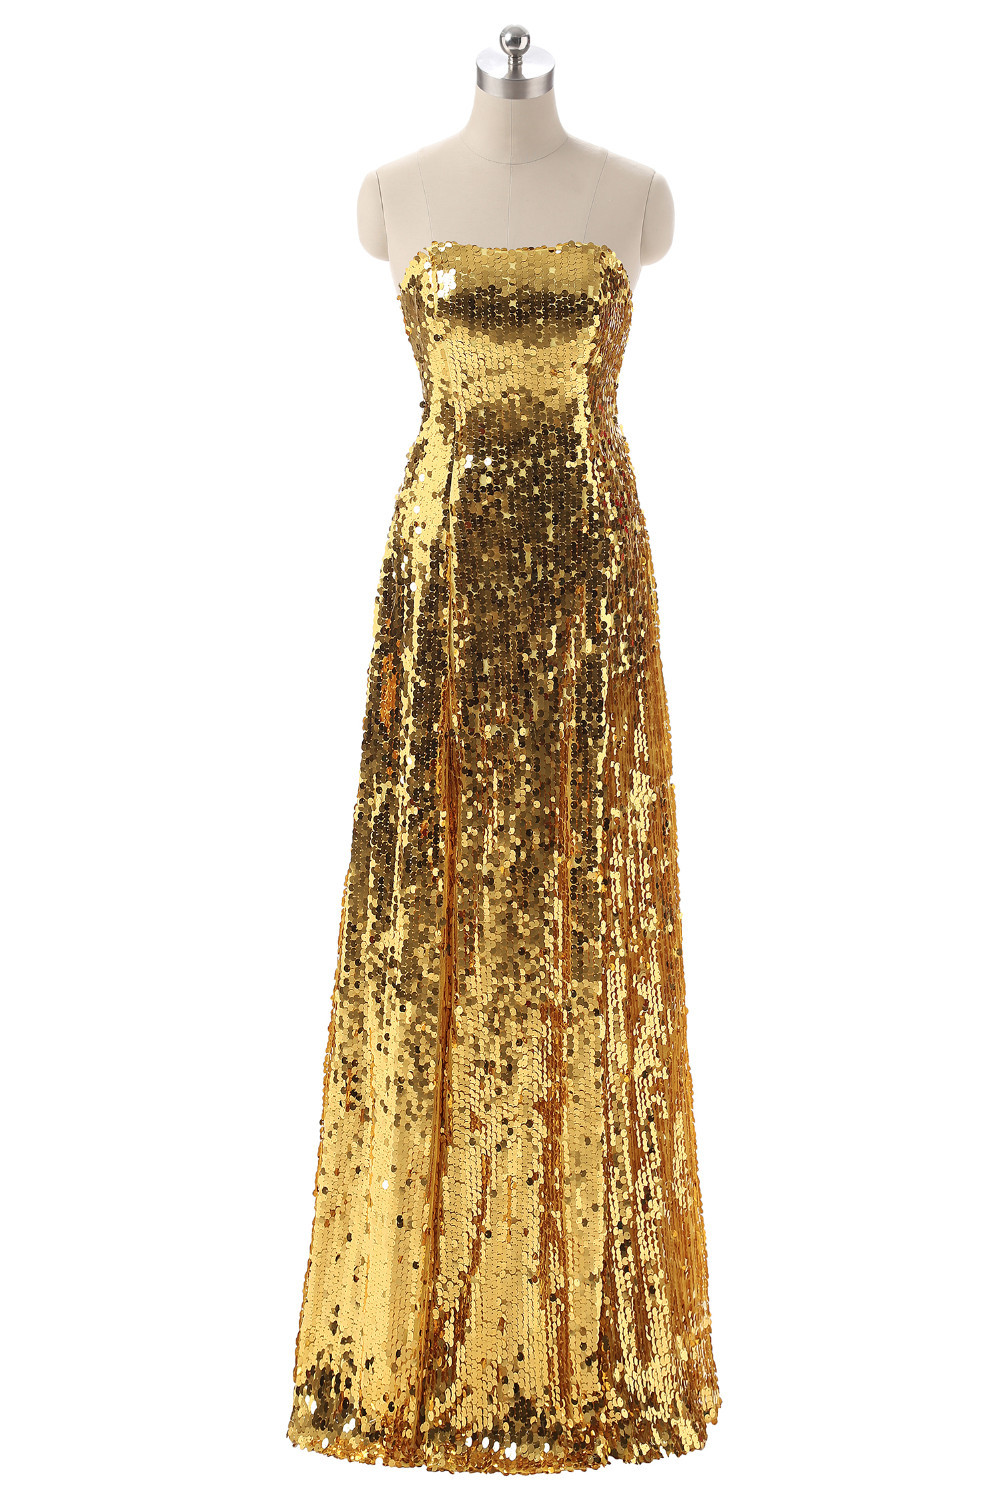 On413 Customized Luxury Gold Silver Long Sequin Evening